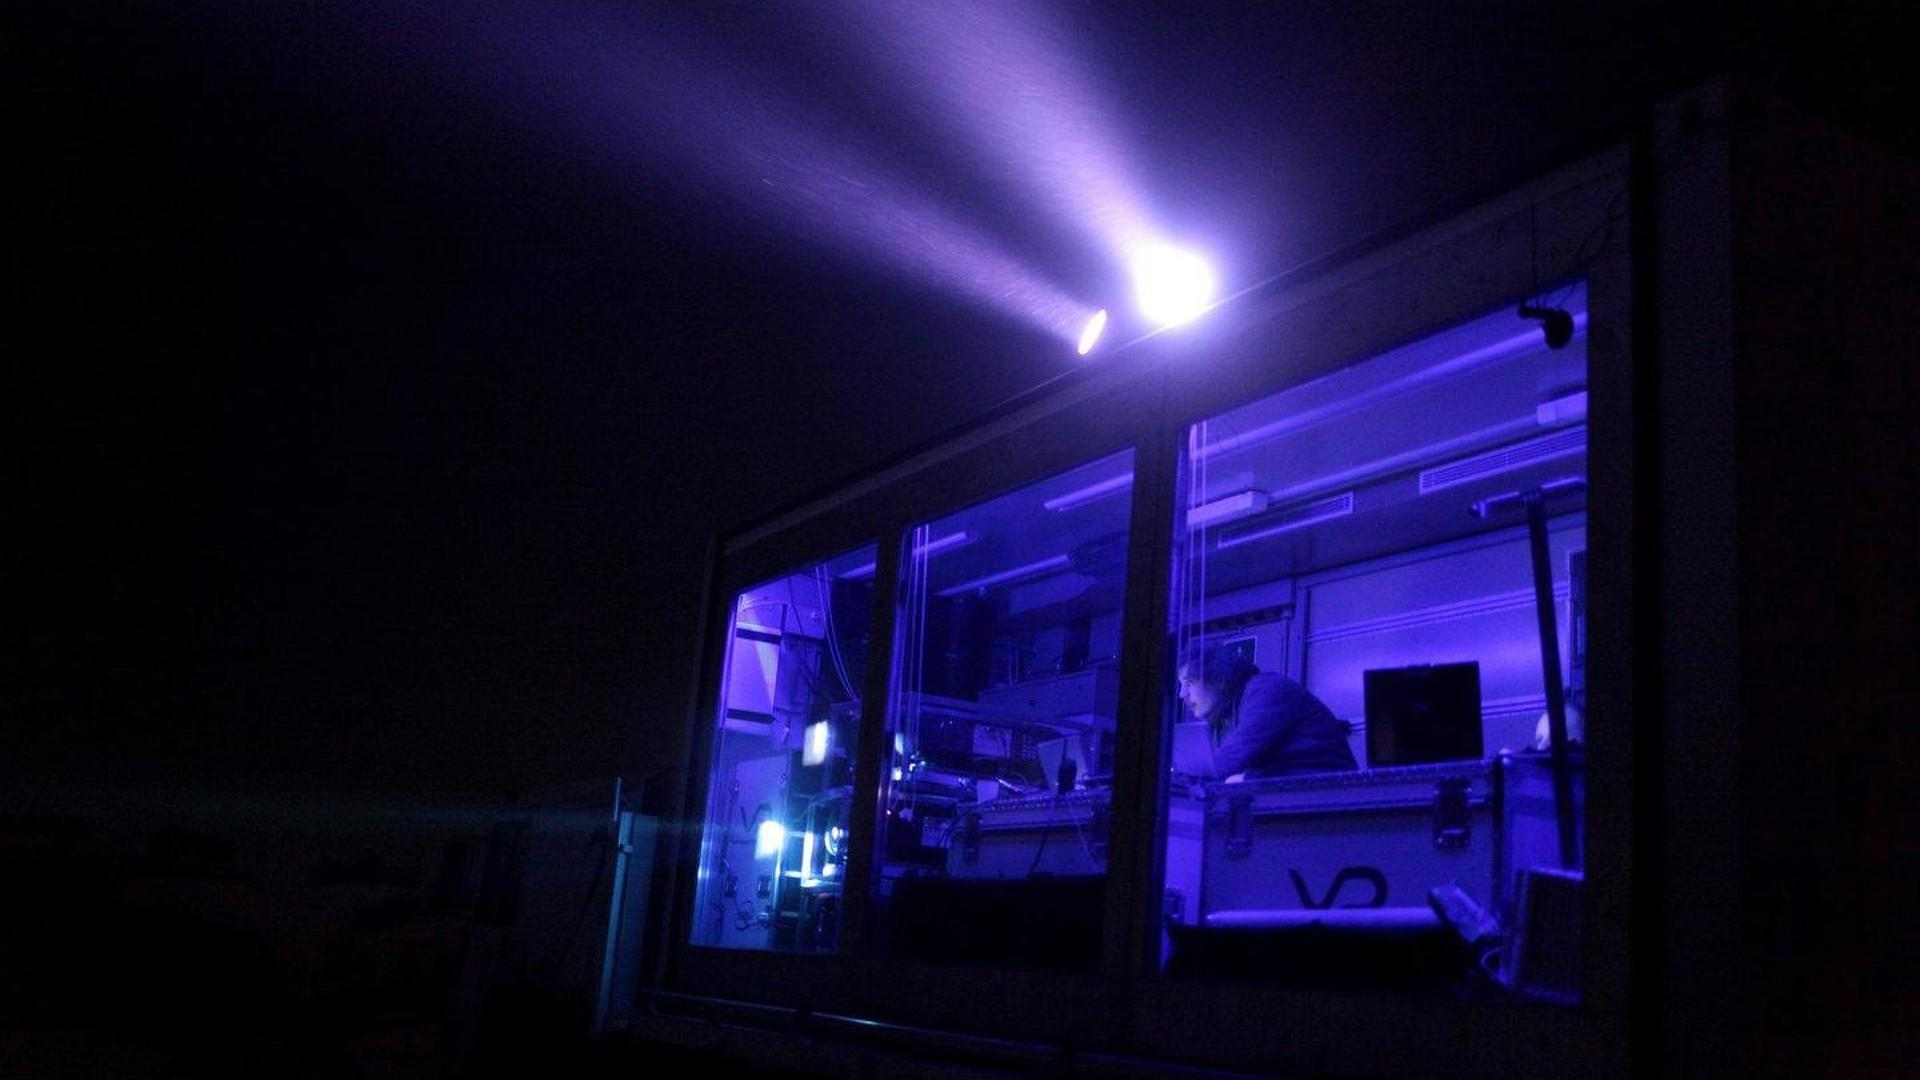 Multi Media Offroad Vehicle can make gigantic projections anywhere [video]